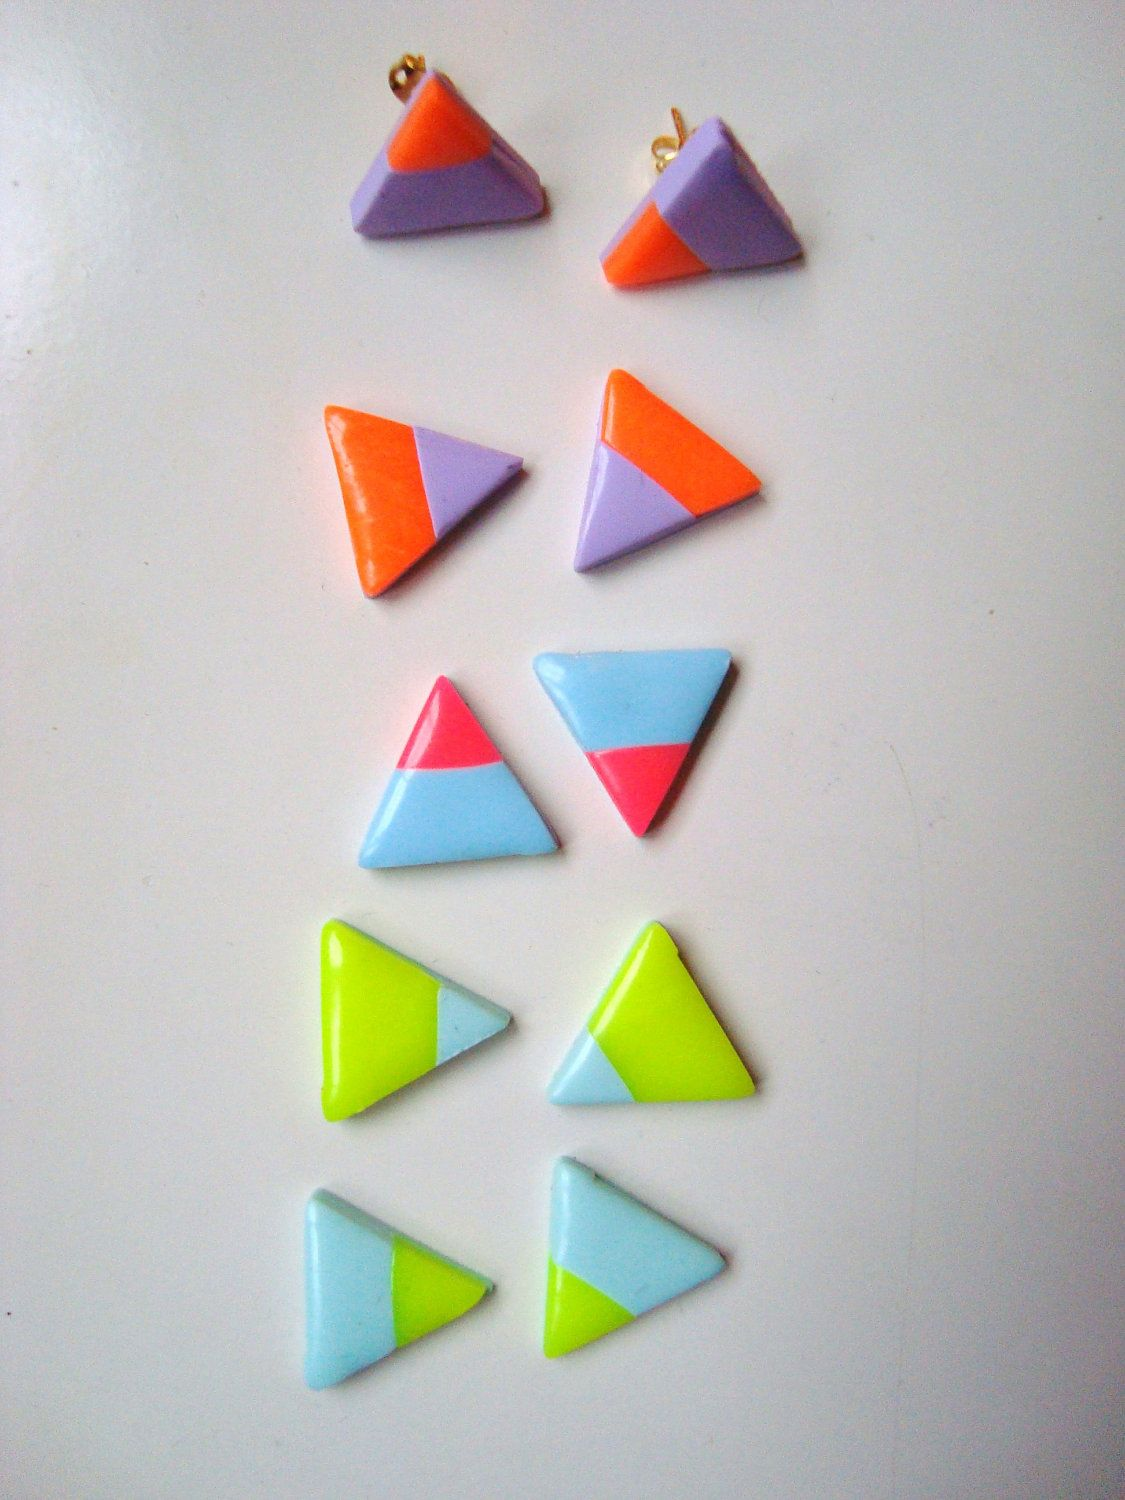 b5fae1514d928 SMALL polymer clay triangle stud earrings in neon/pastel ...